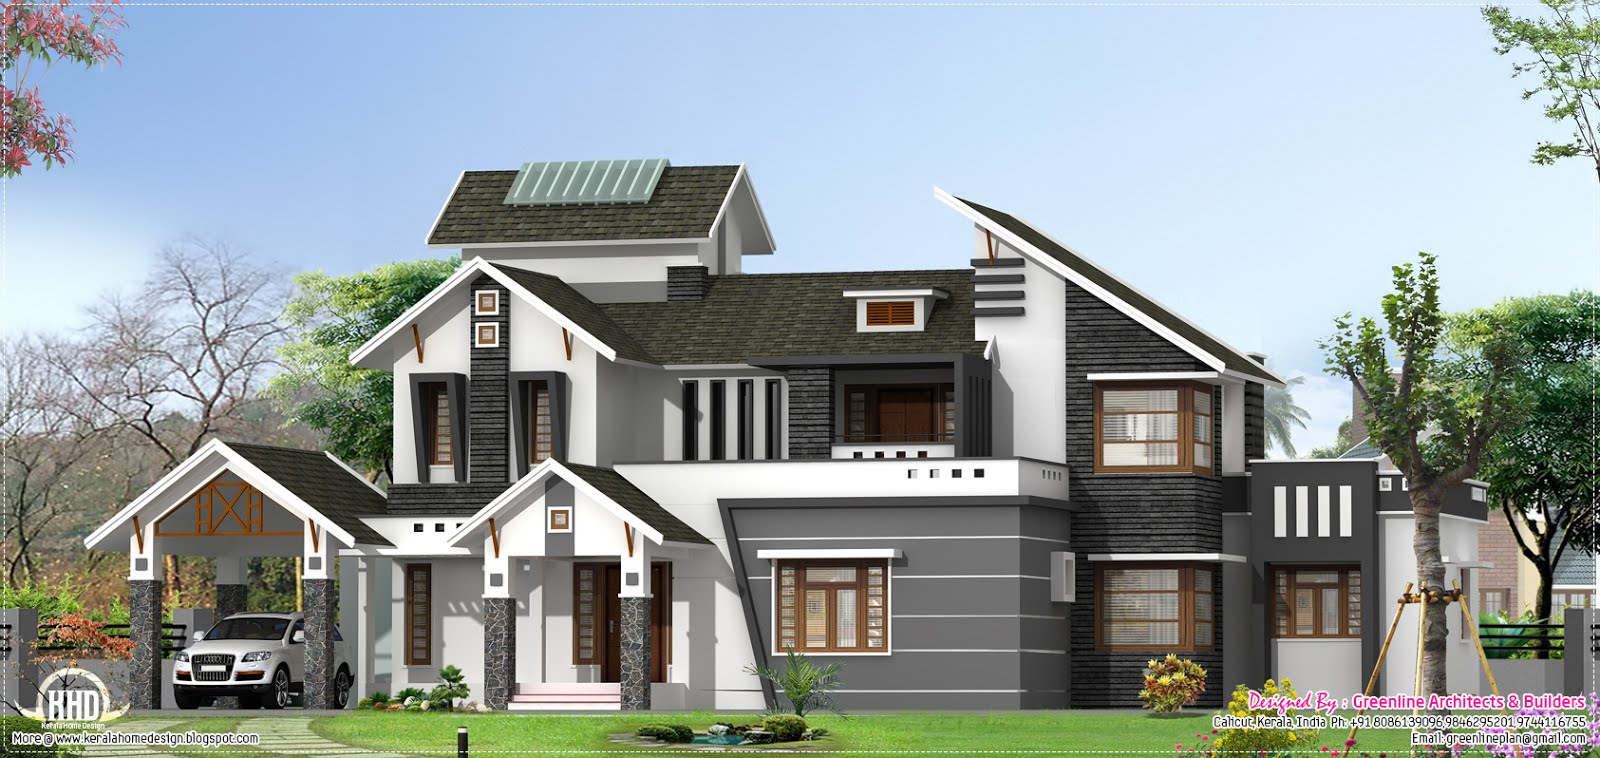 Modern 5 bedroom home design kerala home design and for House to home designs